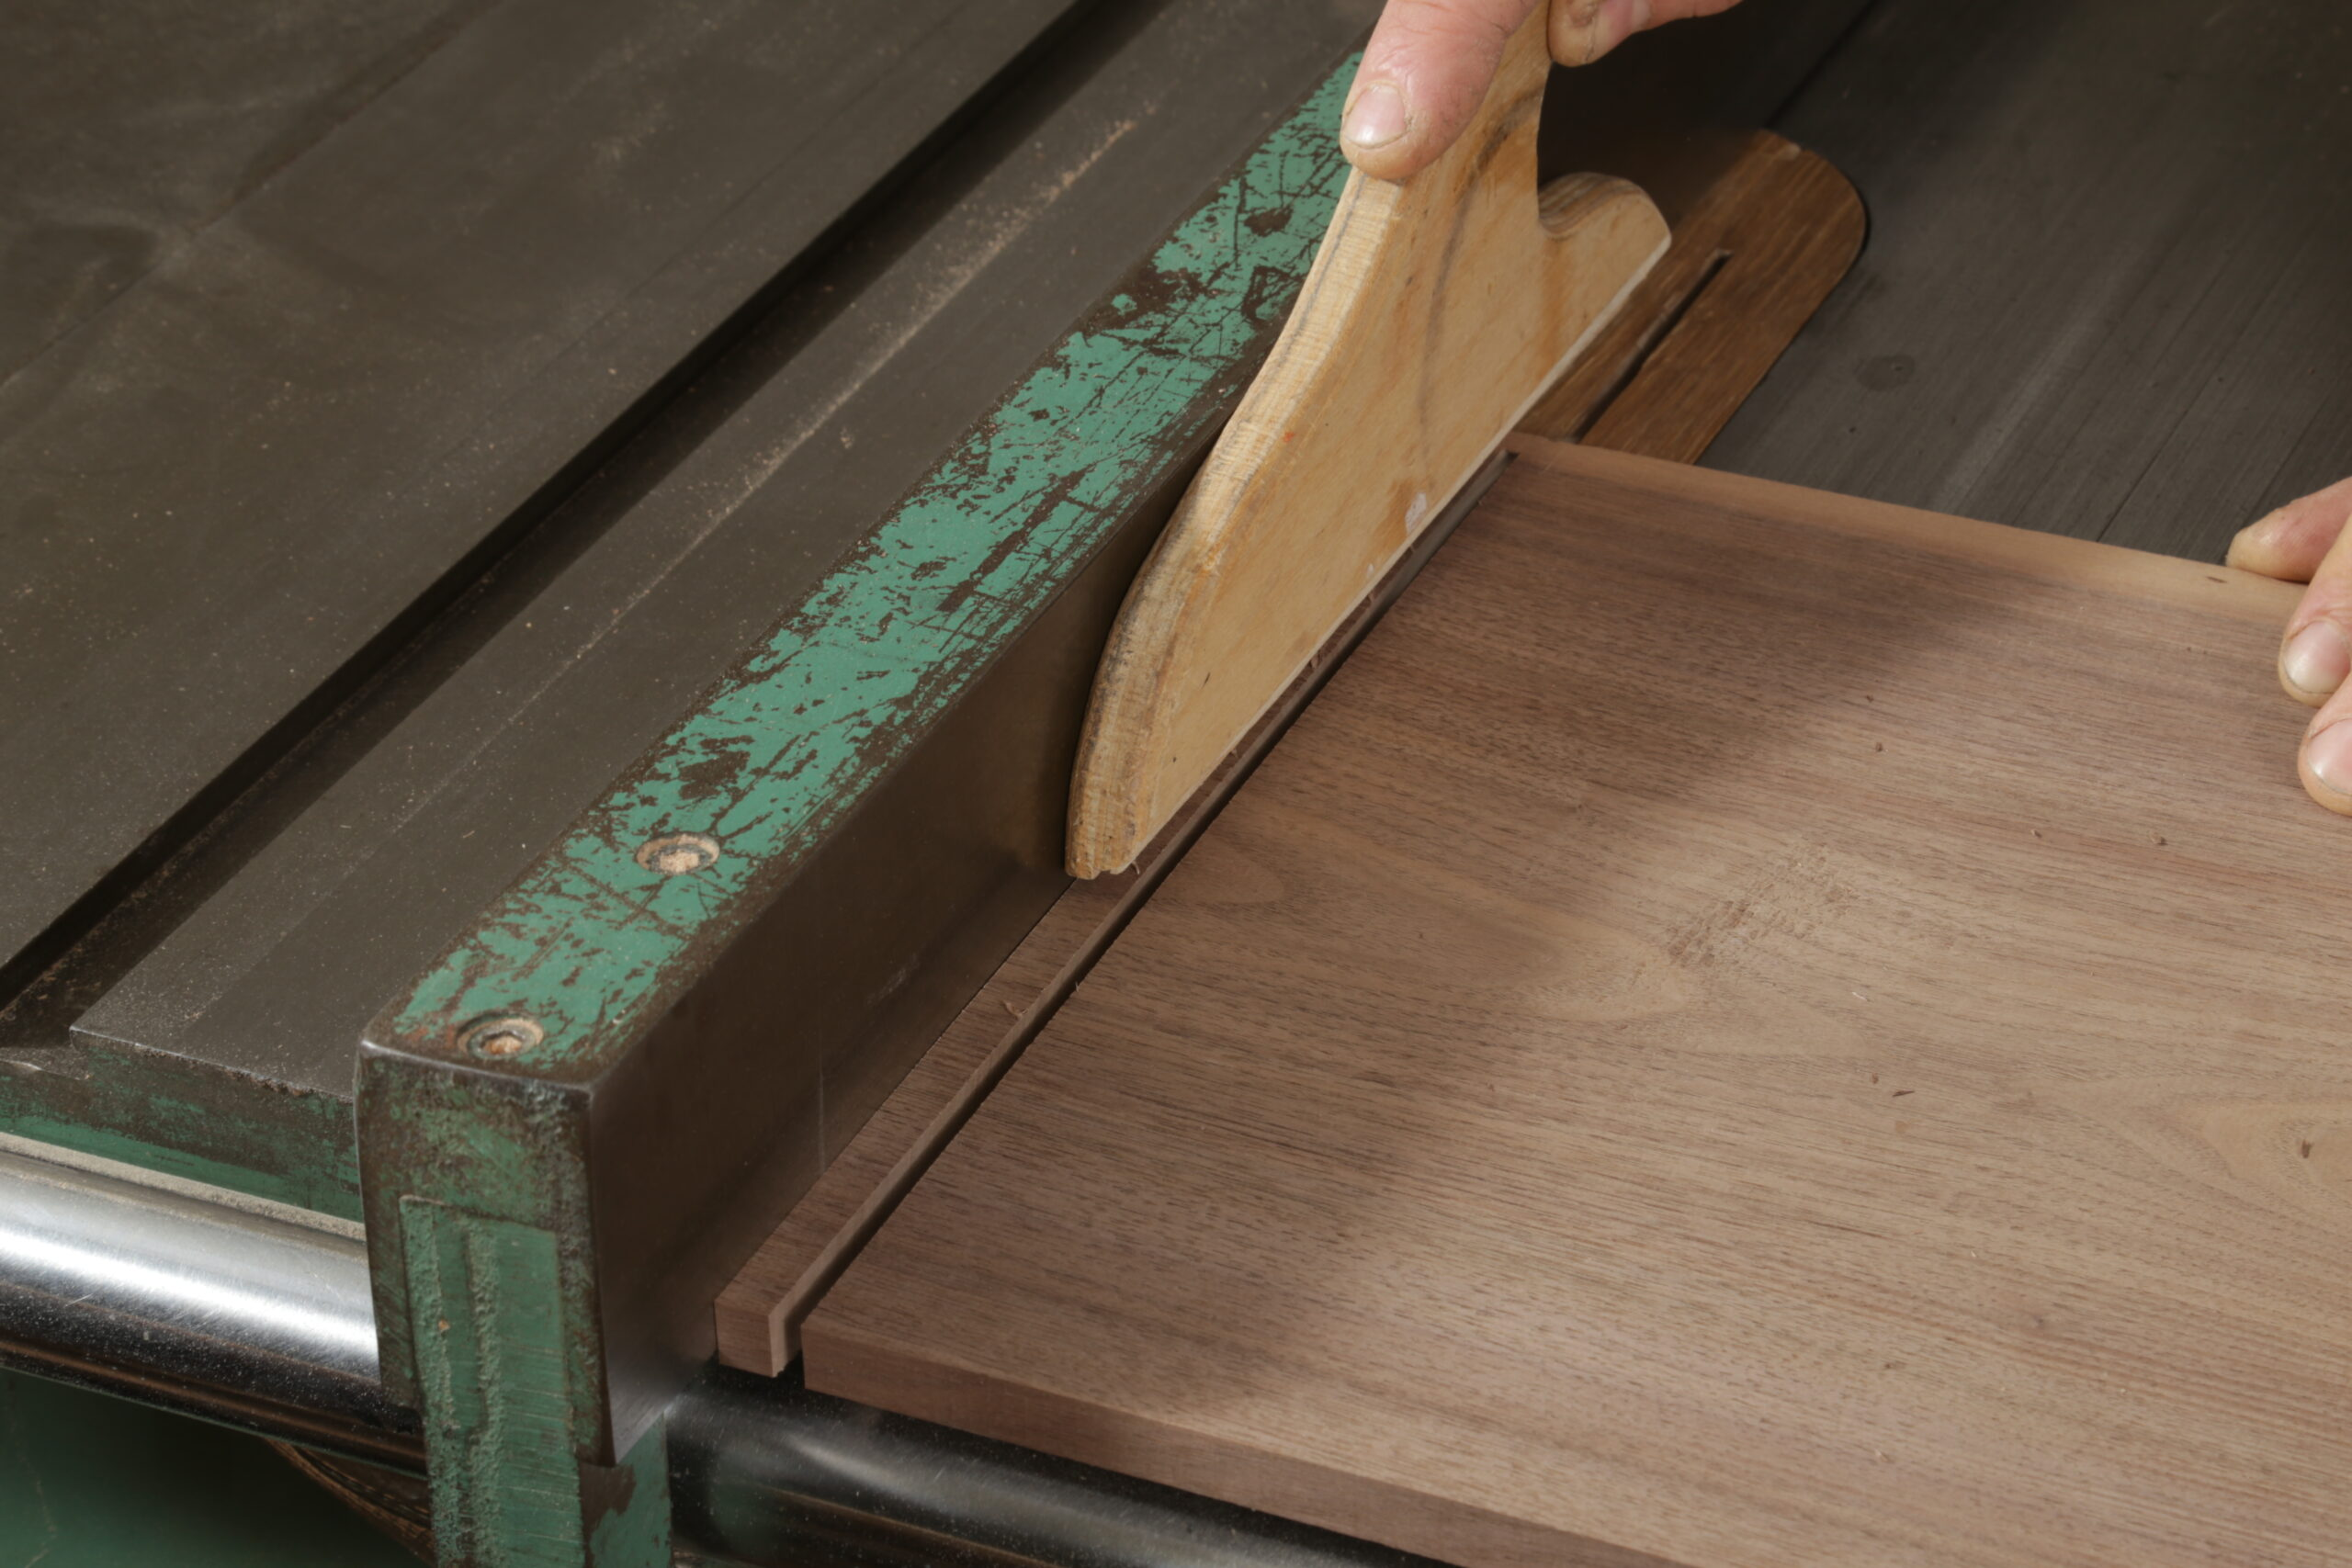 The author crosscutting a narrow strip from the end of a walnut board. This strip will be a runner for drawers. or safety, he is using a push stick to keep his right hand away from the blade.